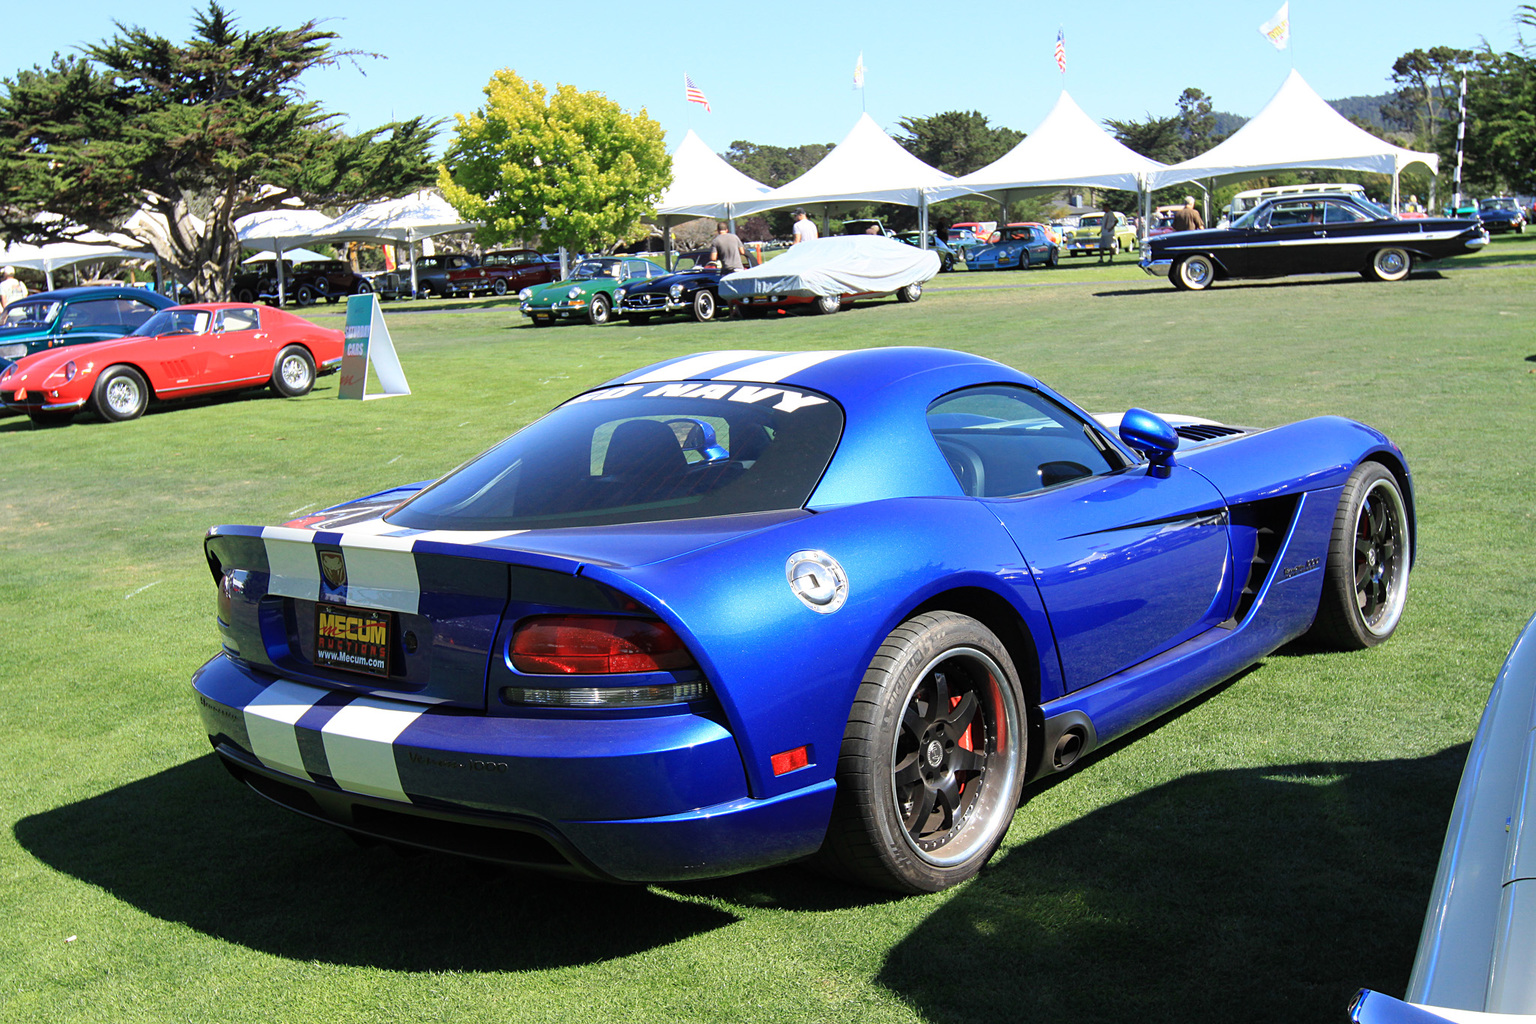 2005 Hennessey SRT-10 Viper Venom 1000 Coupe Gallery